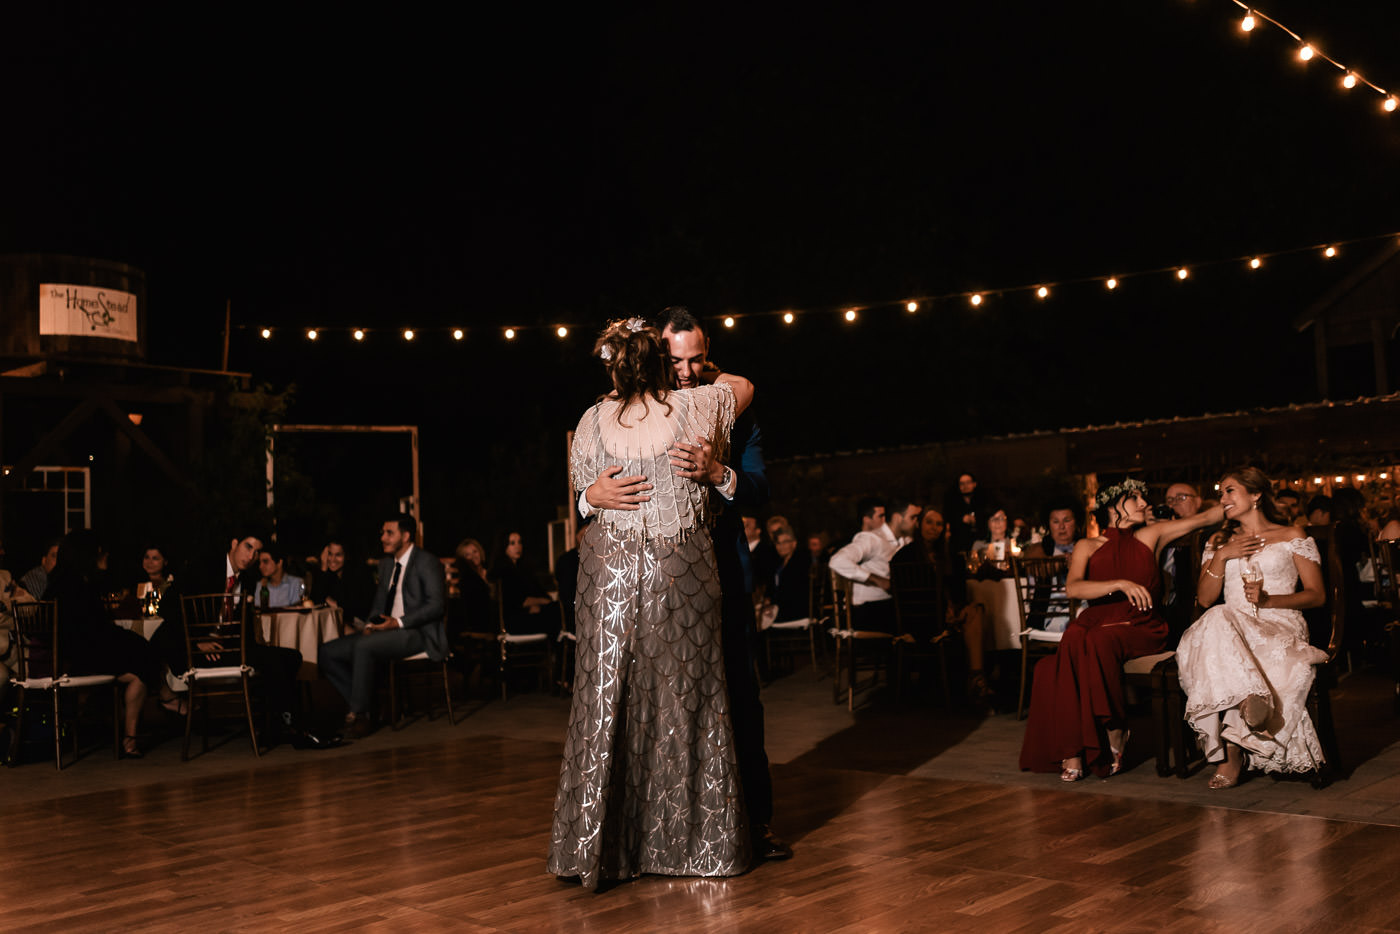 Mother and son dance at The Homestead.